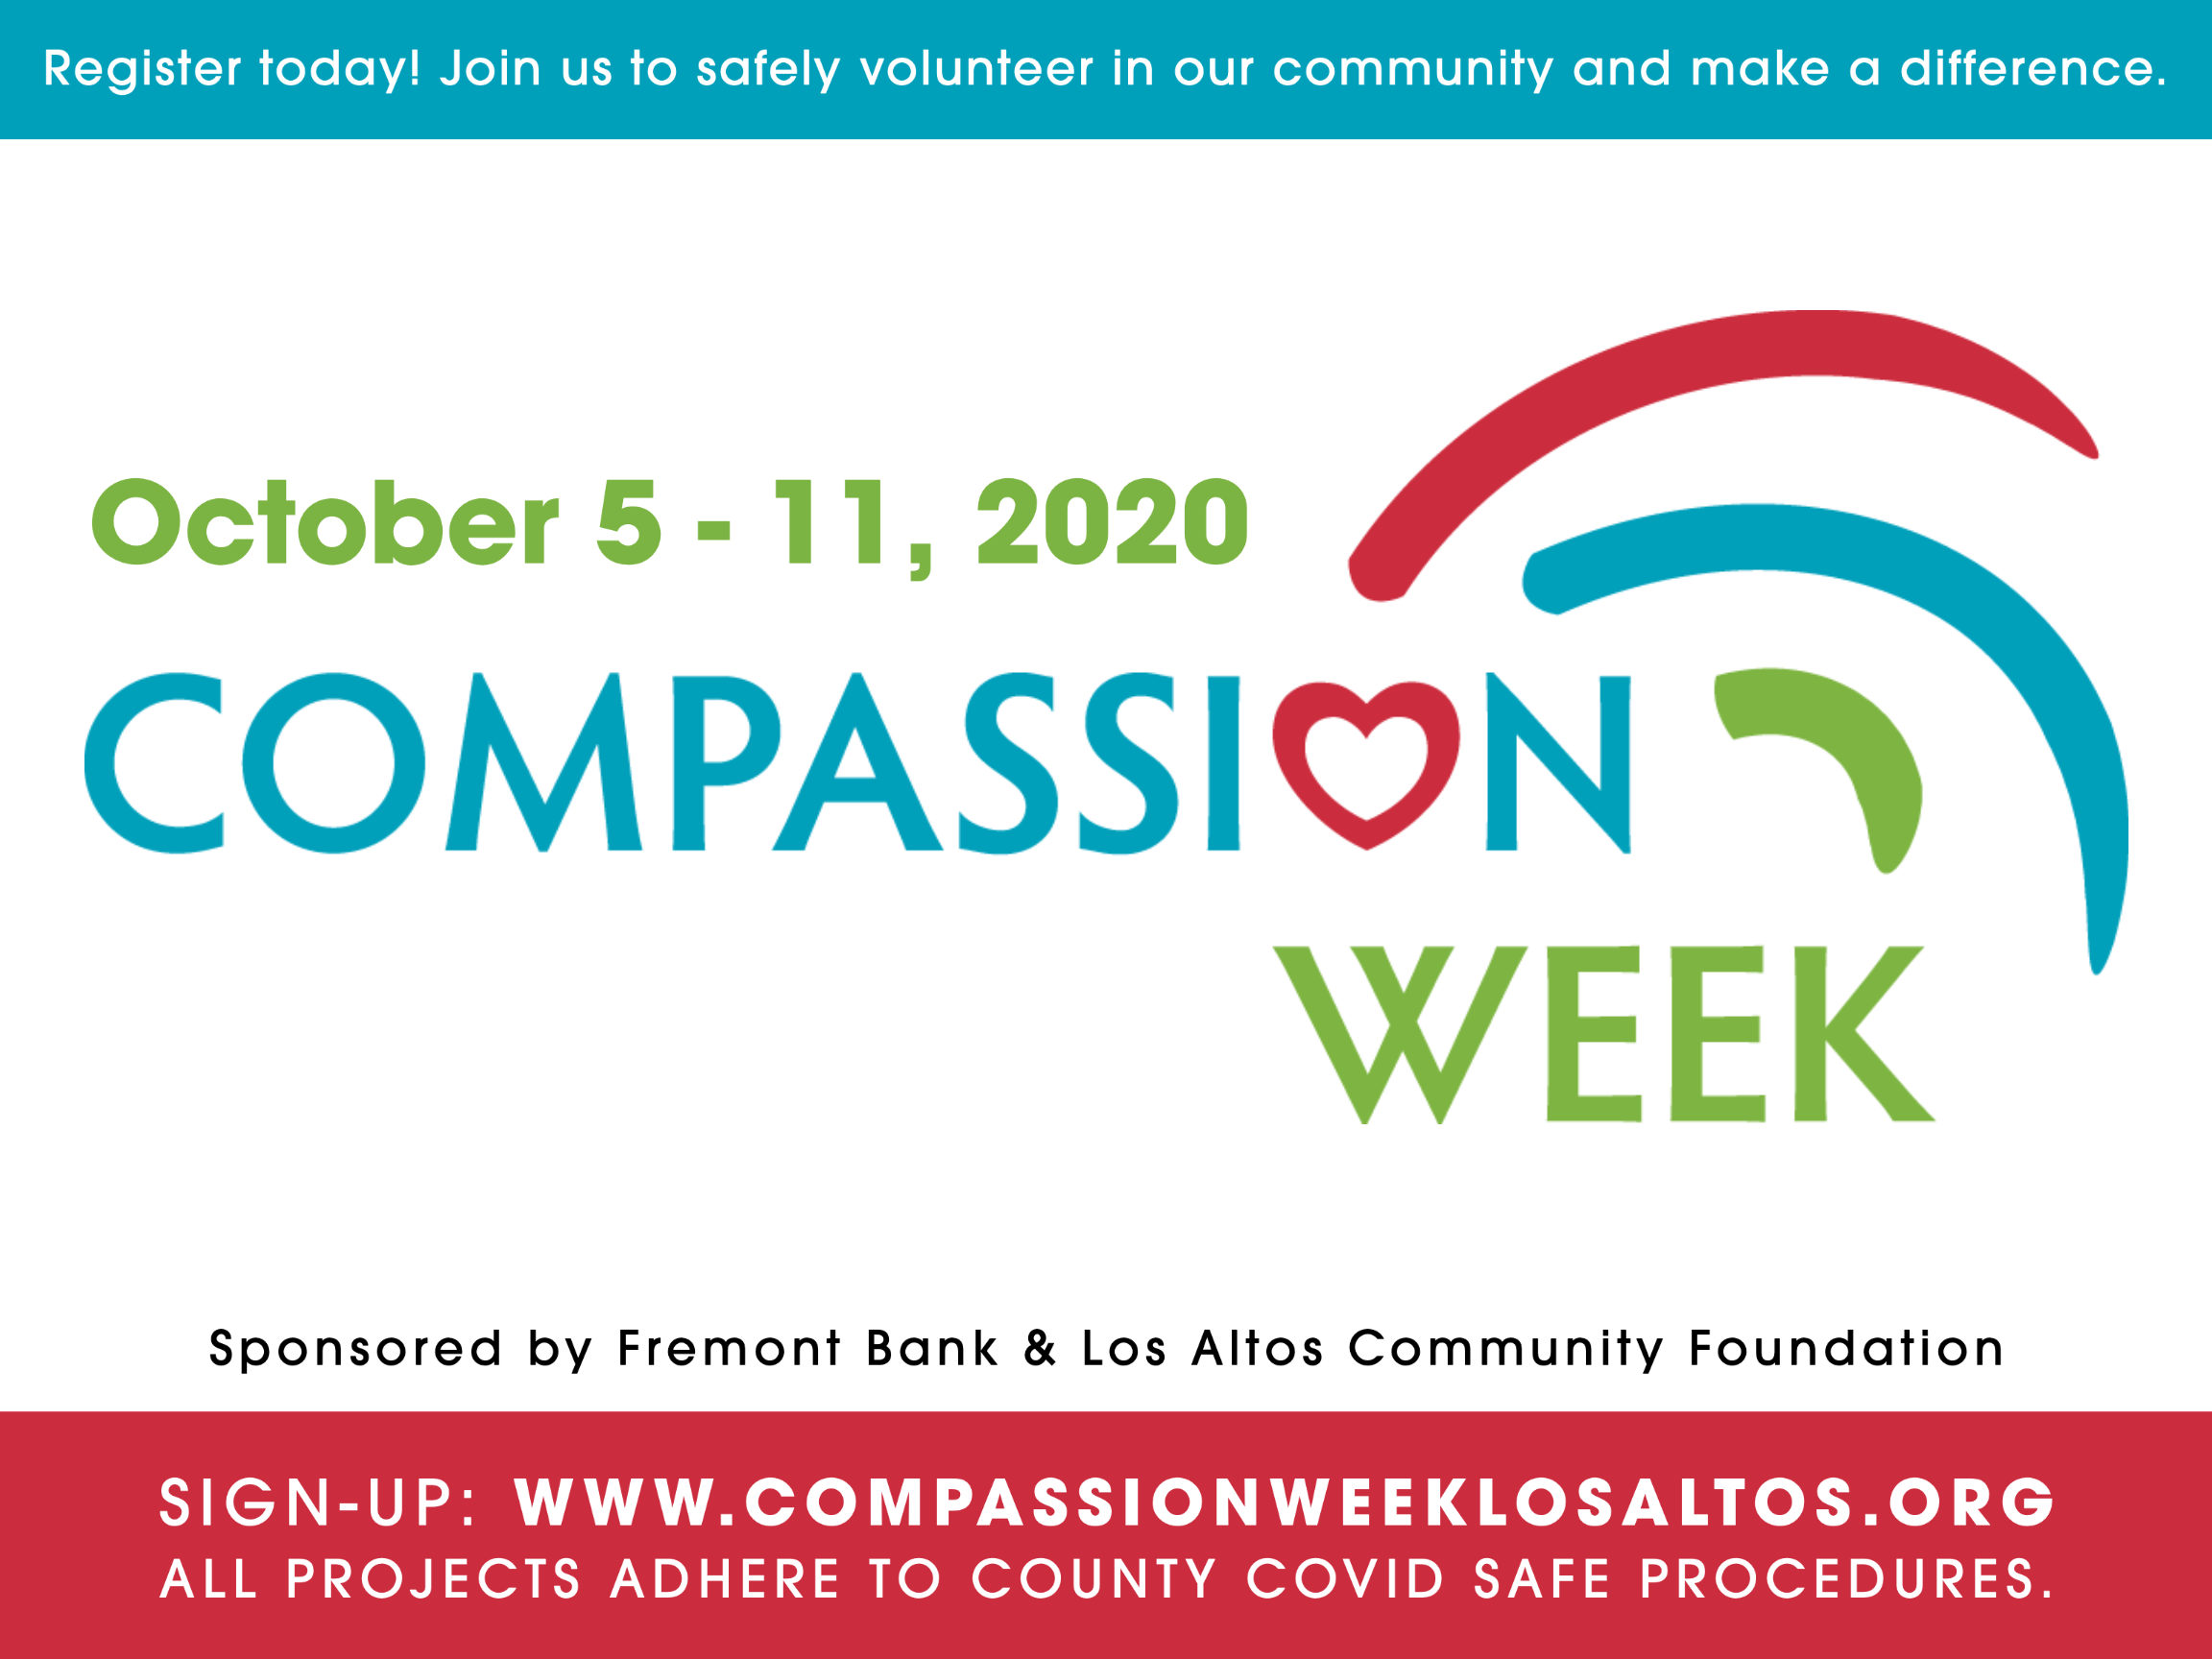 COMPASSION WEEK